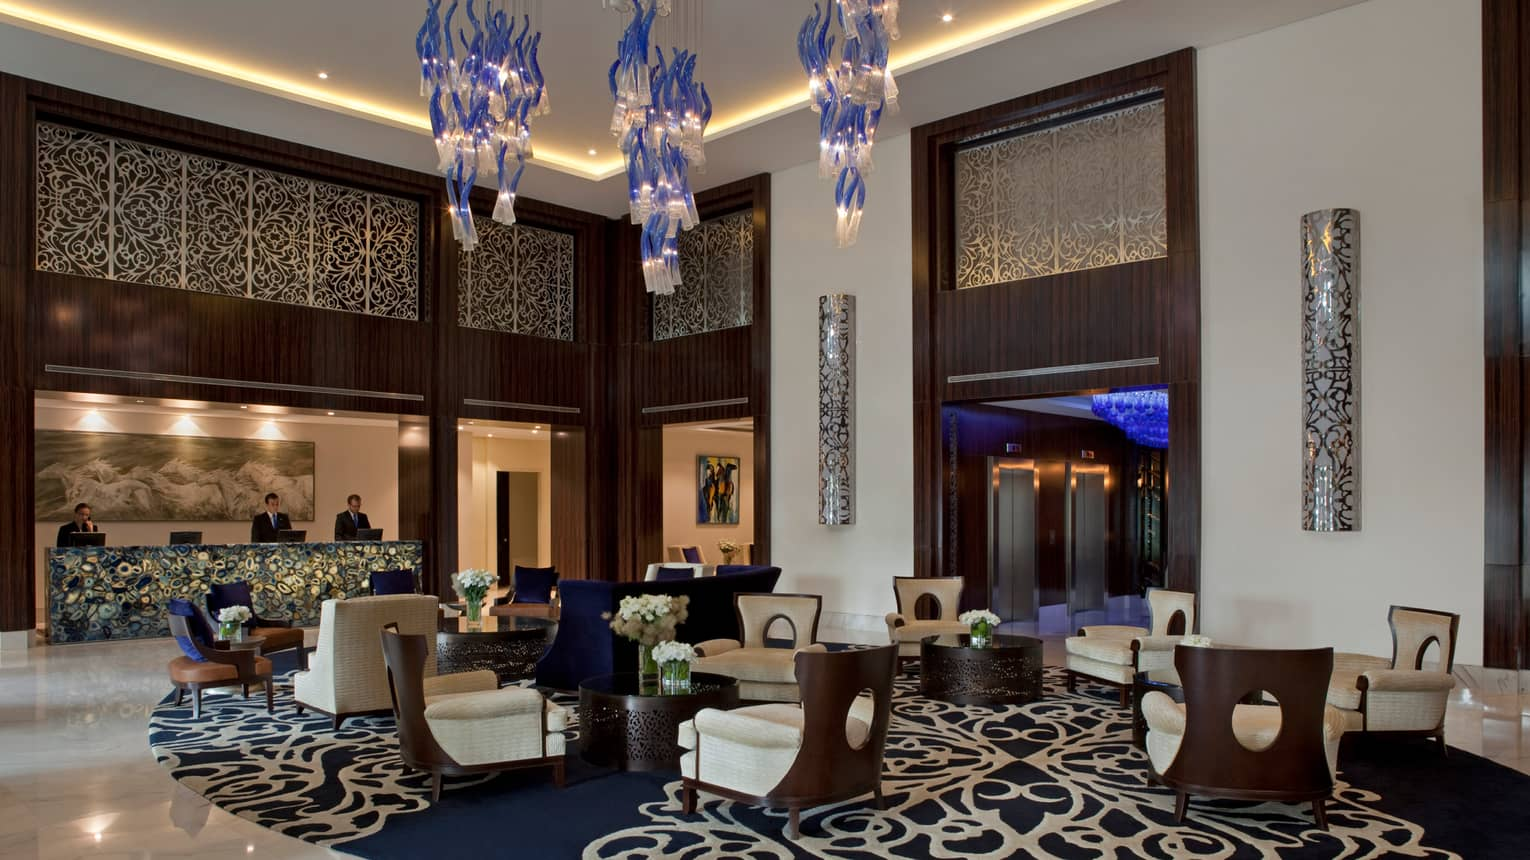 Four Seasons Buenos Aires hotel elegant lobby with armchairs on blue-and-white carpet, under modern chandeliers